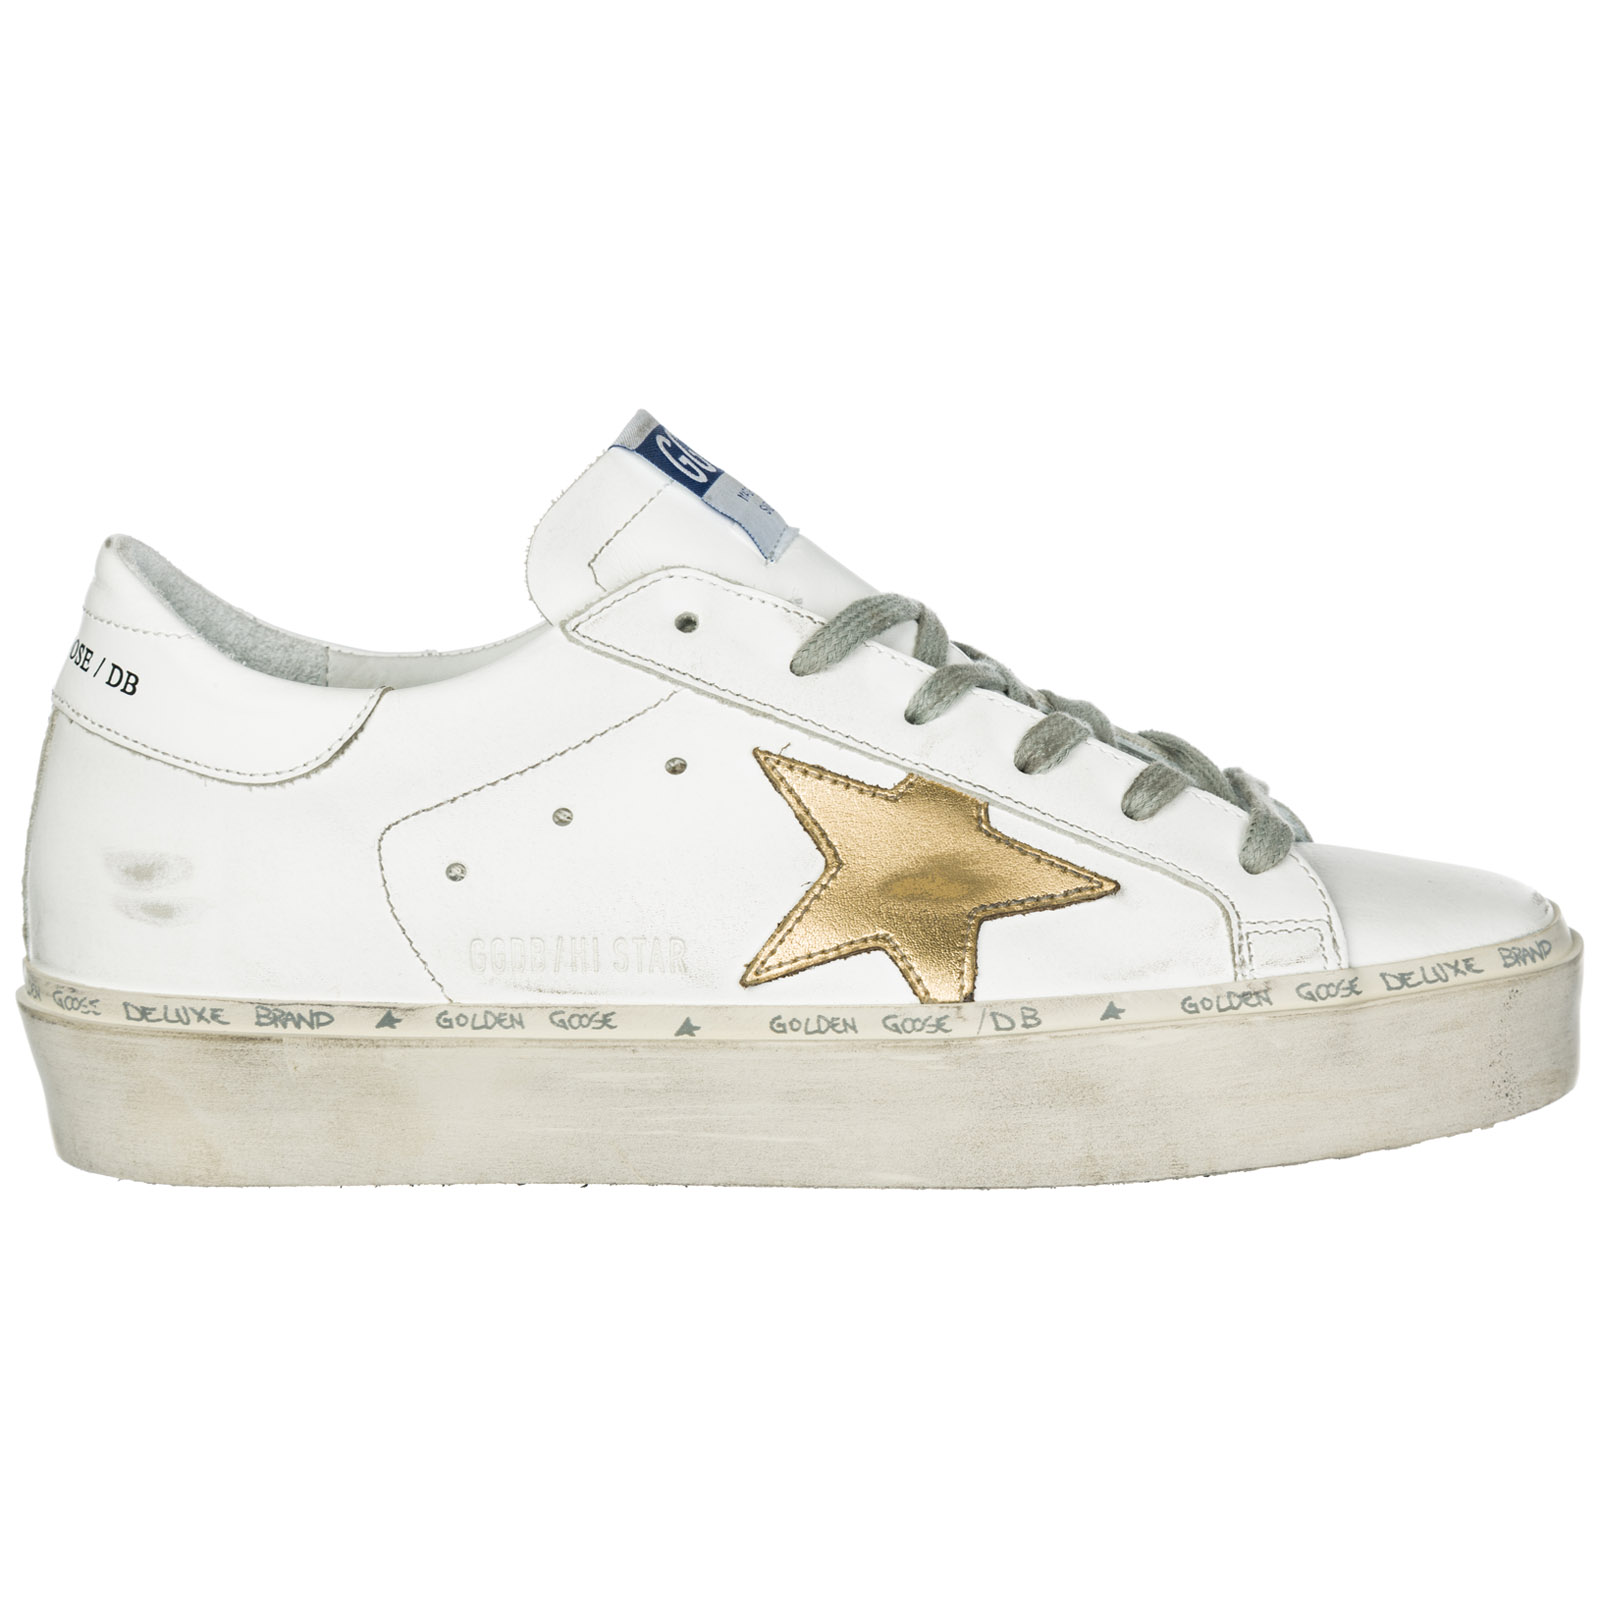 1298ef62f893d Golden Goose Women s shoes leather trainers sneakers hi star